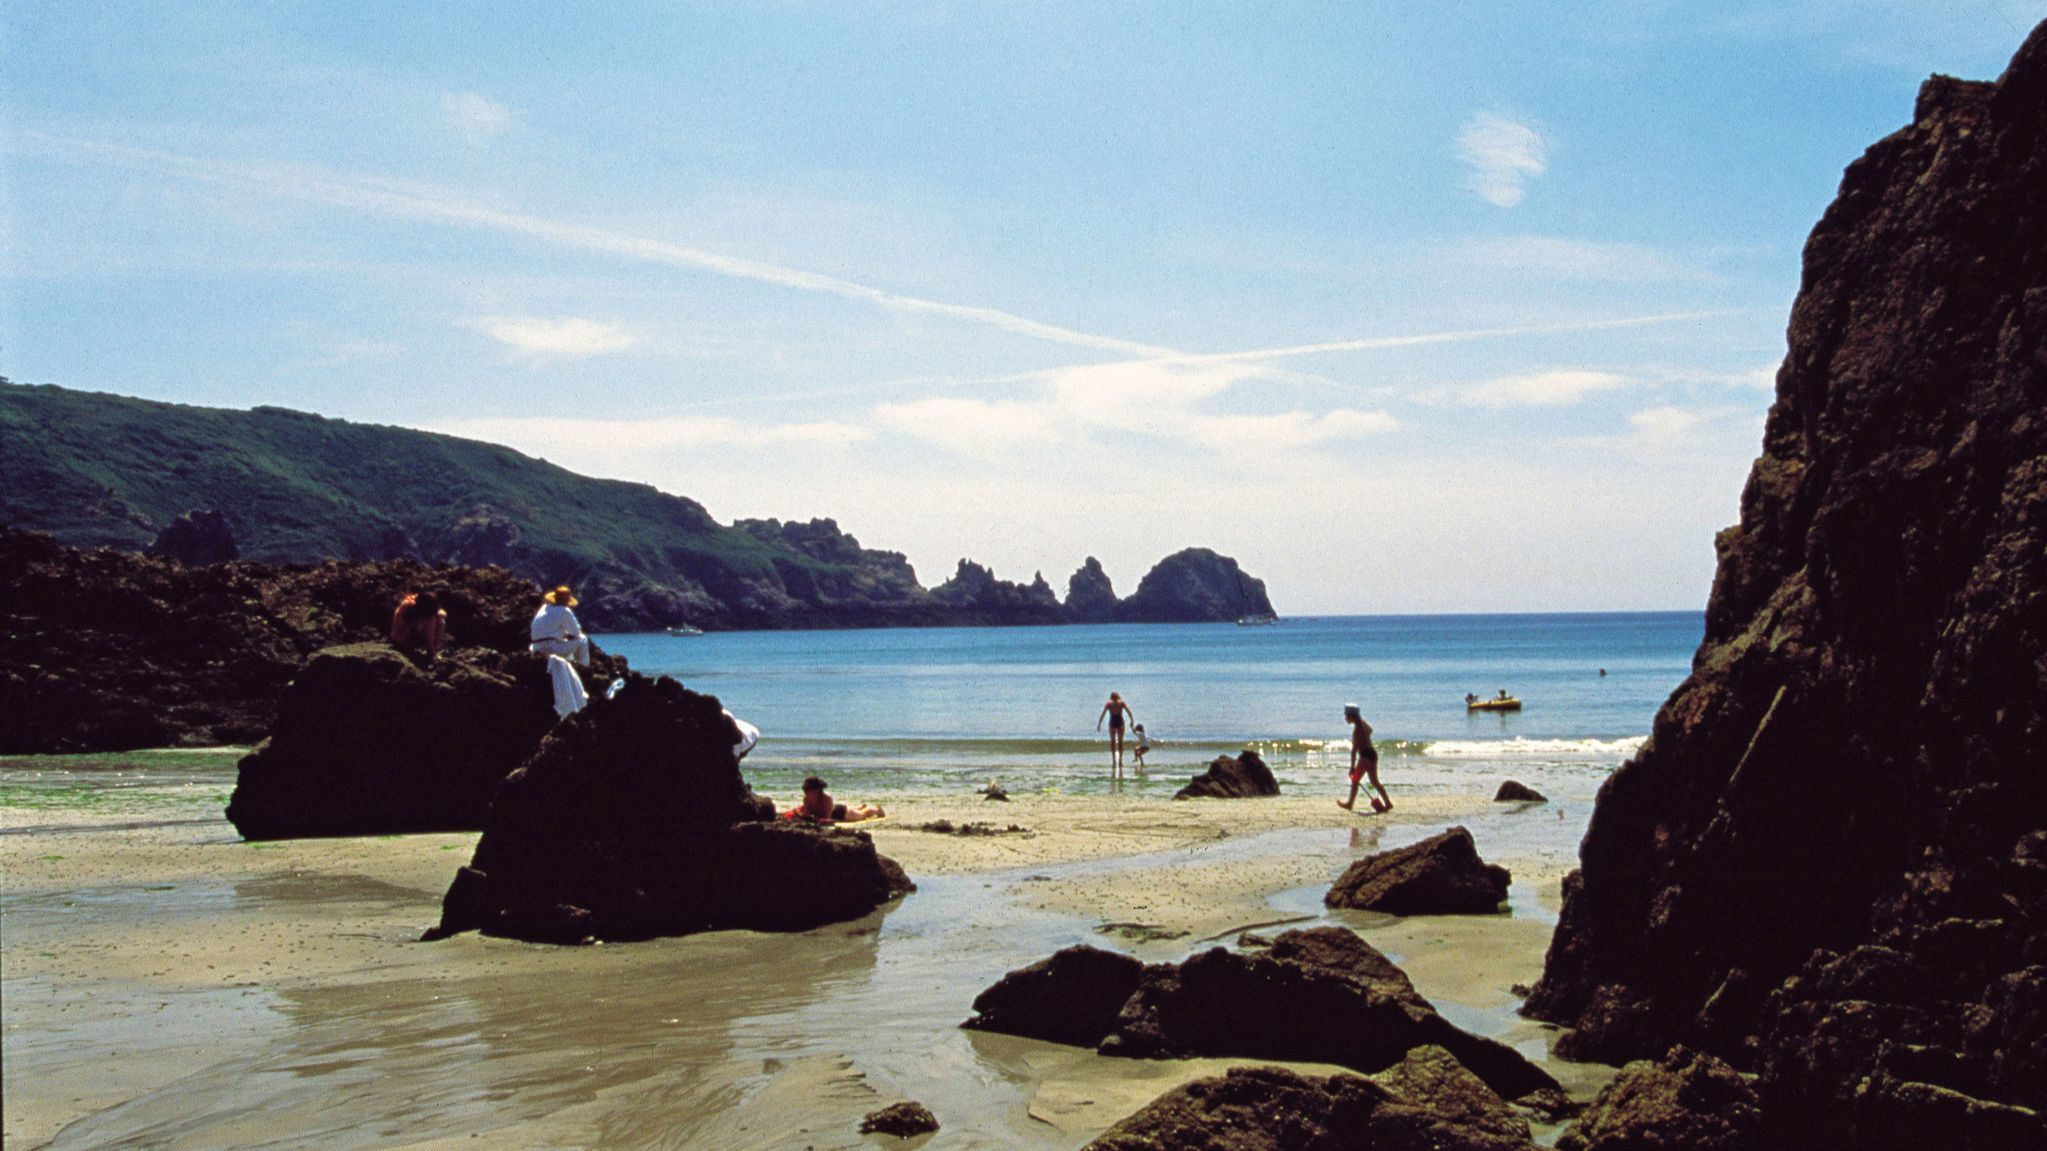 ST. PETER PORT, GUERNSEY - Moulin Huet Bay Guernsey. Image courtesy of VisitGuernsey.